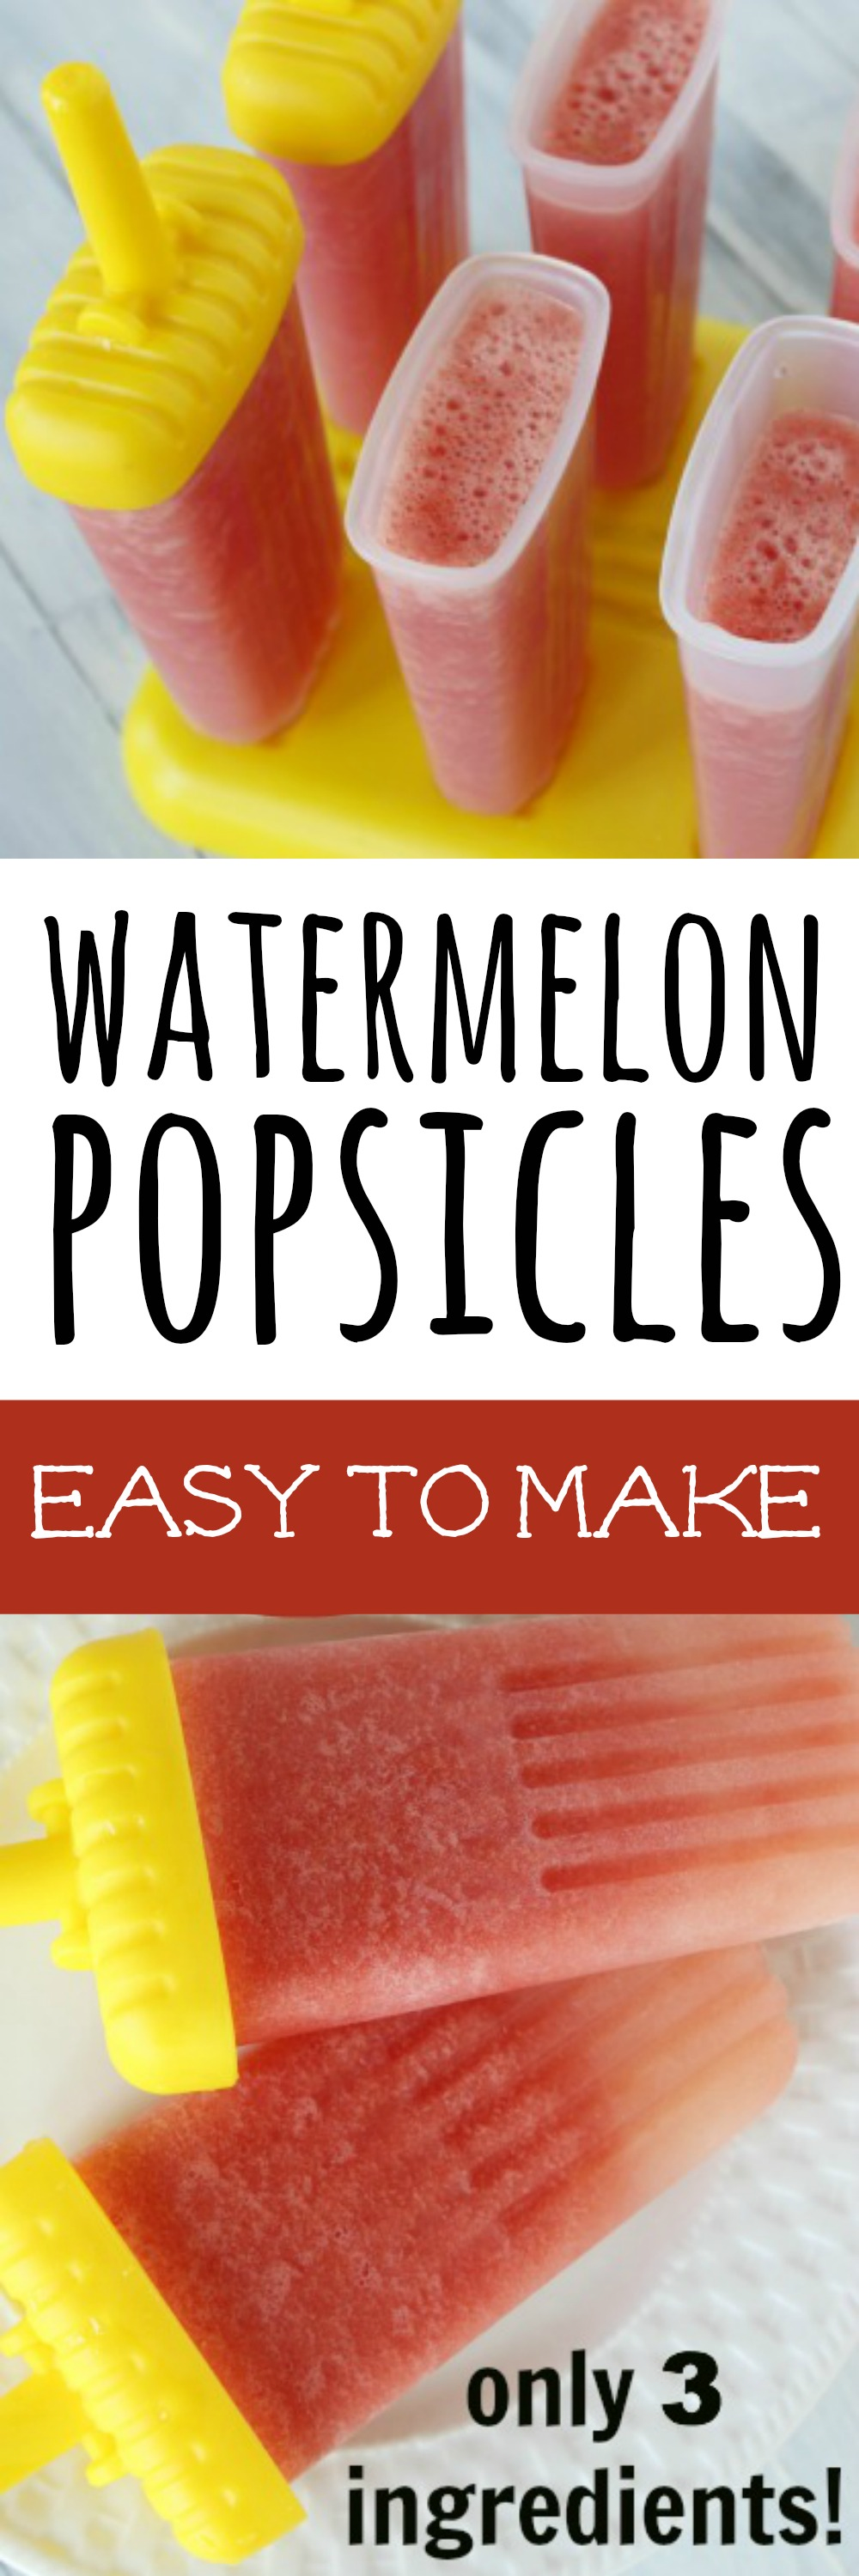 easy to make watermelon popsicles